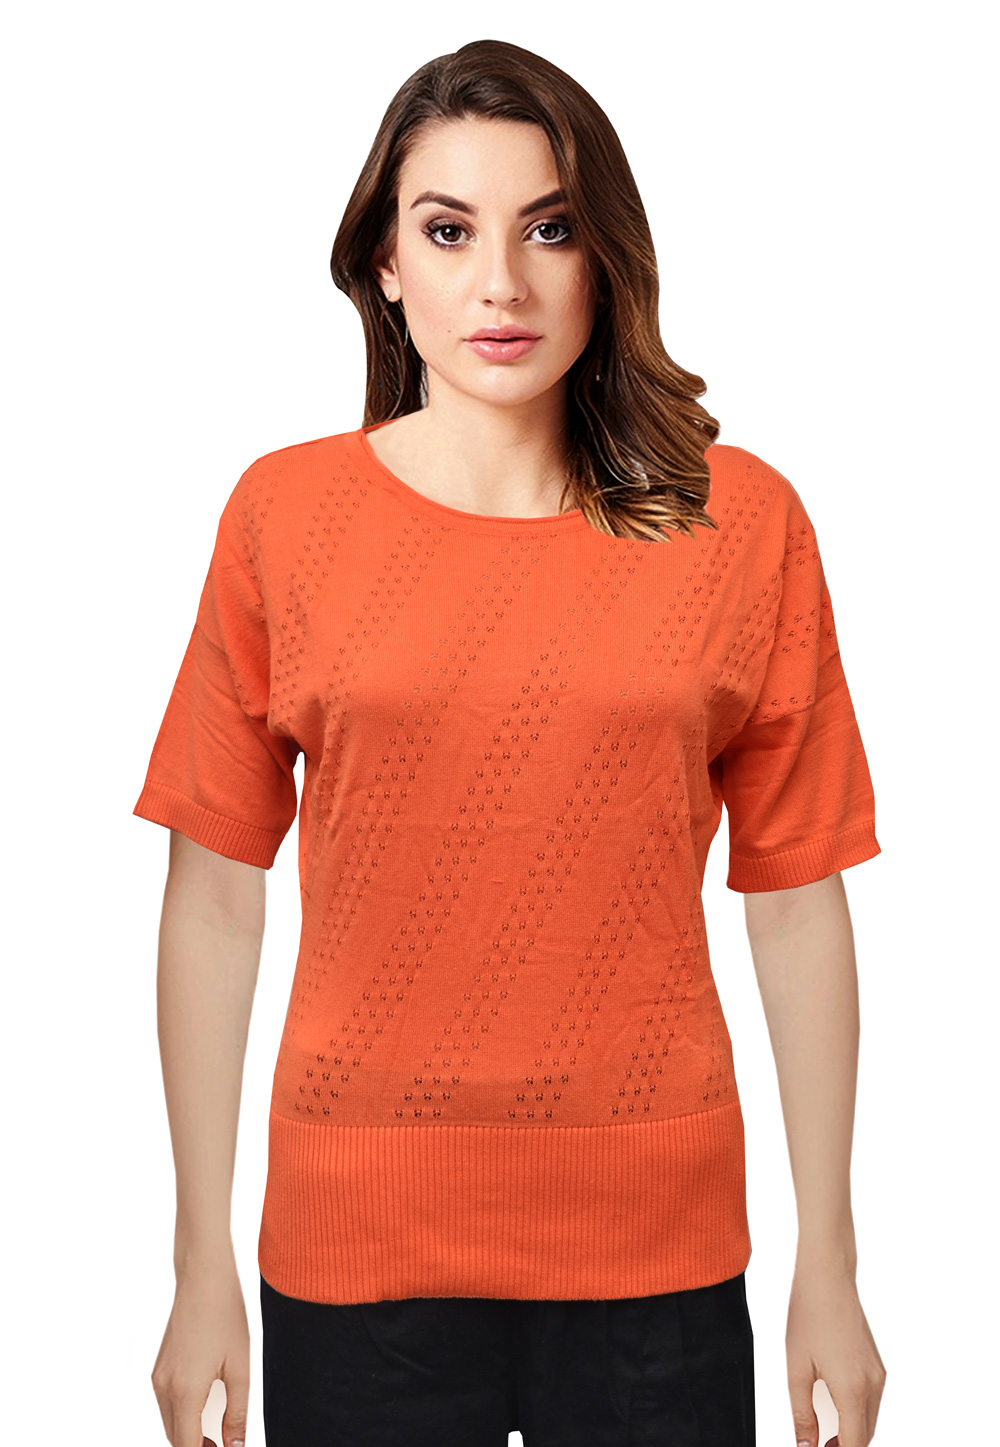 Orange Knitted Sweater Tops 214248